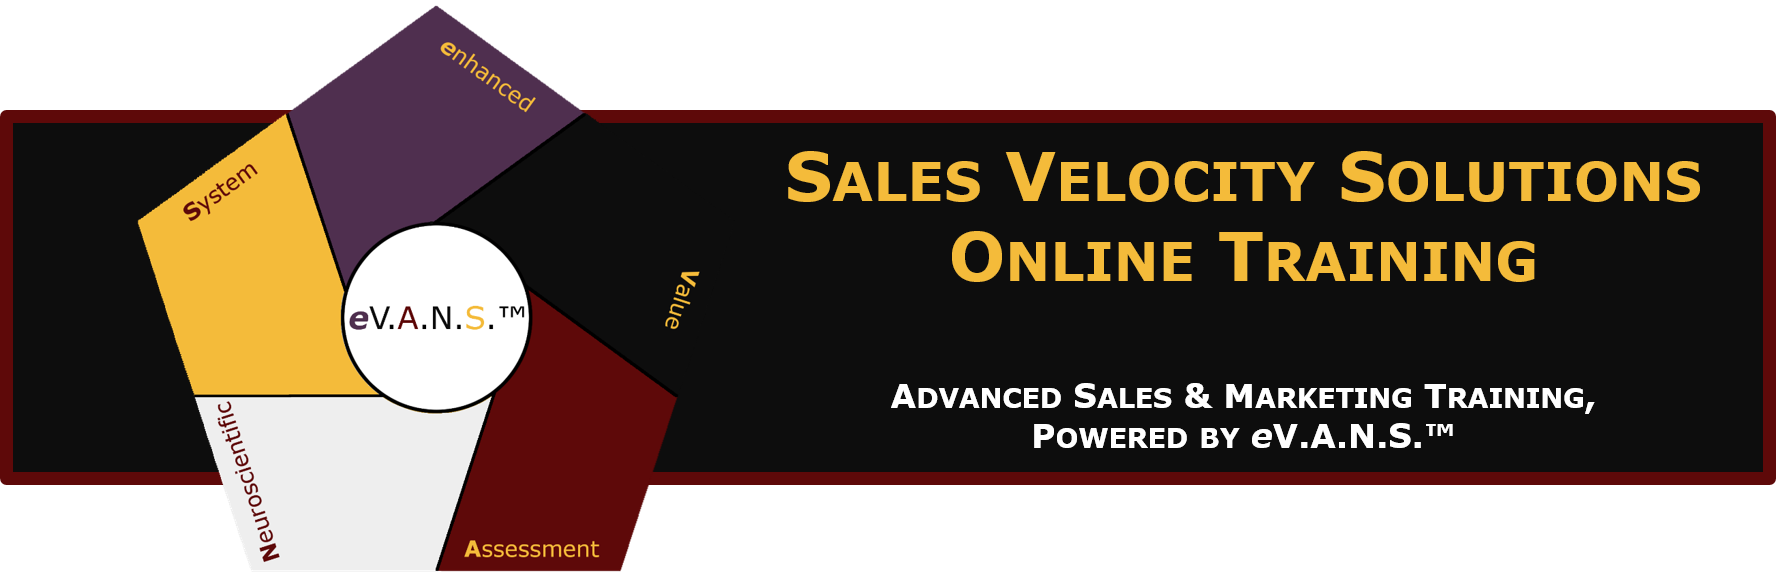 Sales Velocity Solutions Online Training Platform